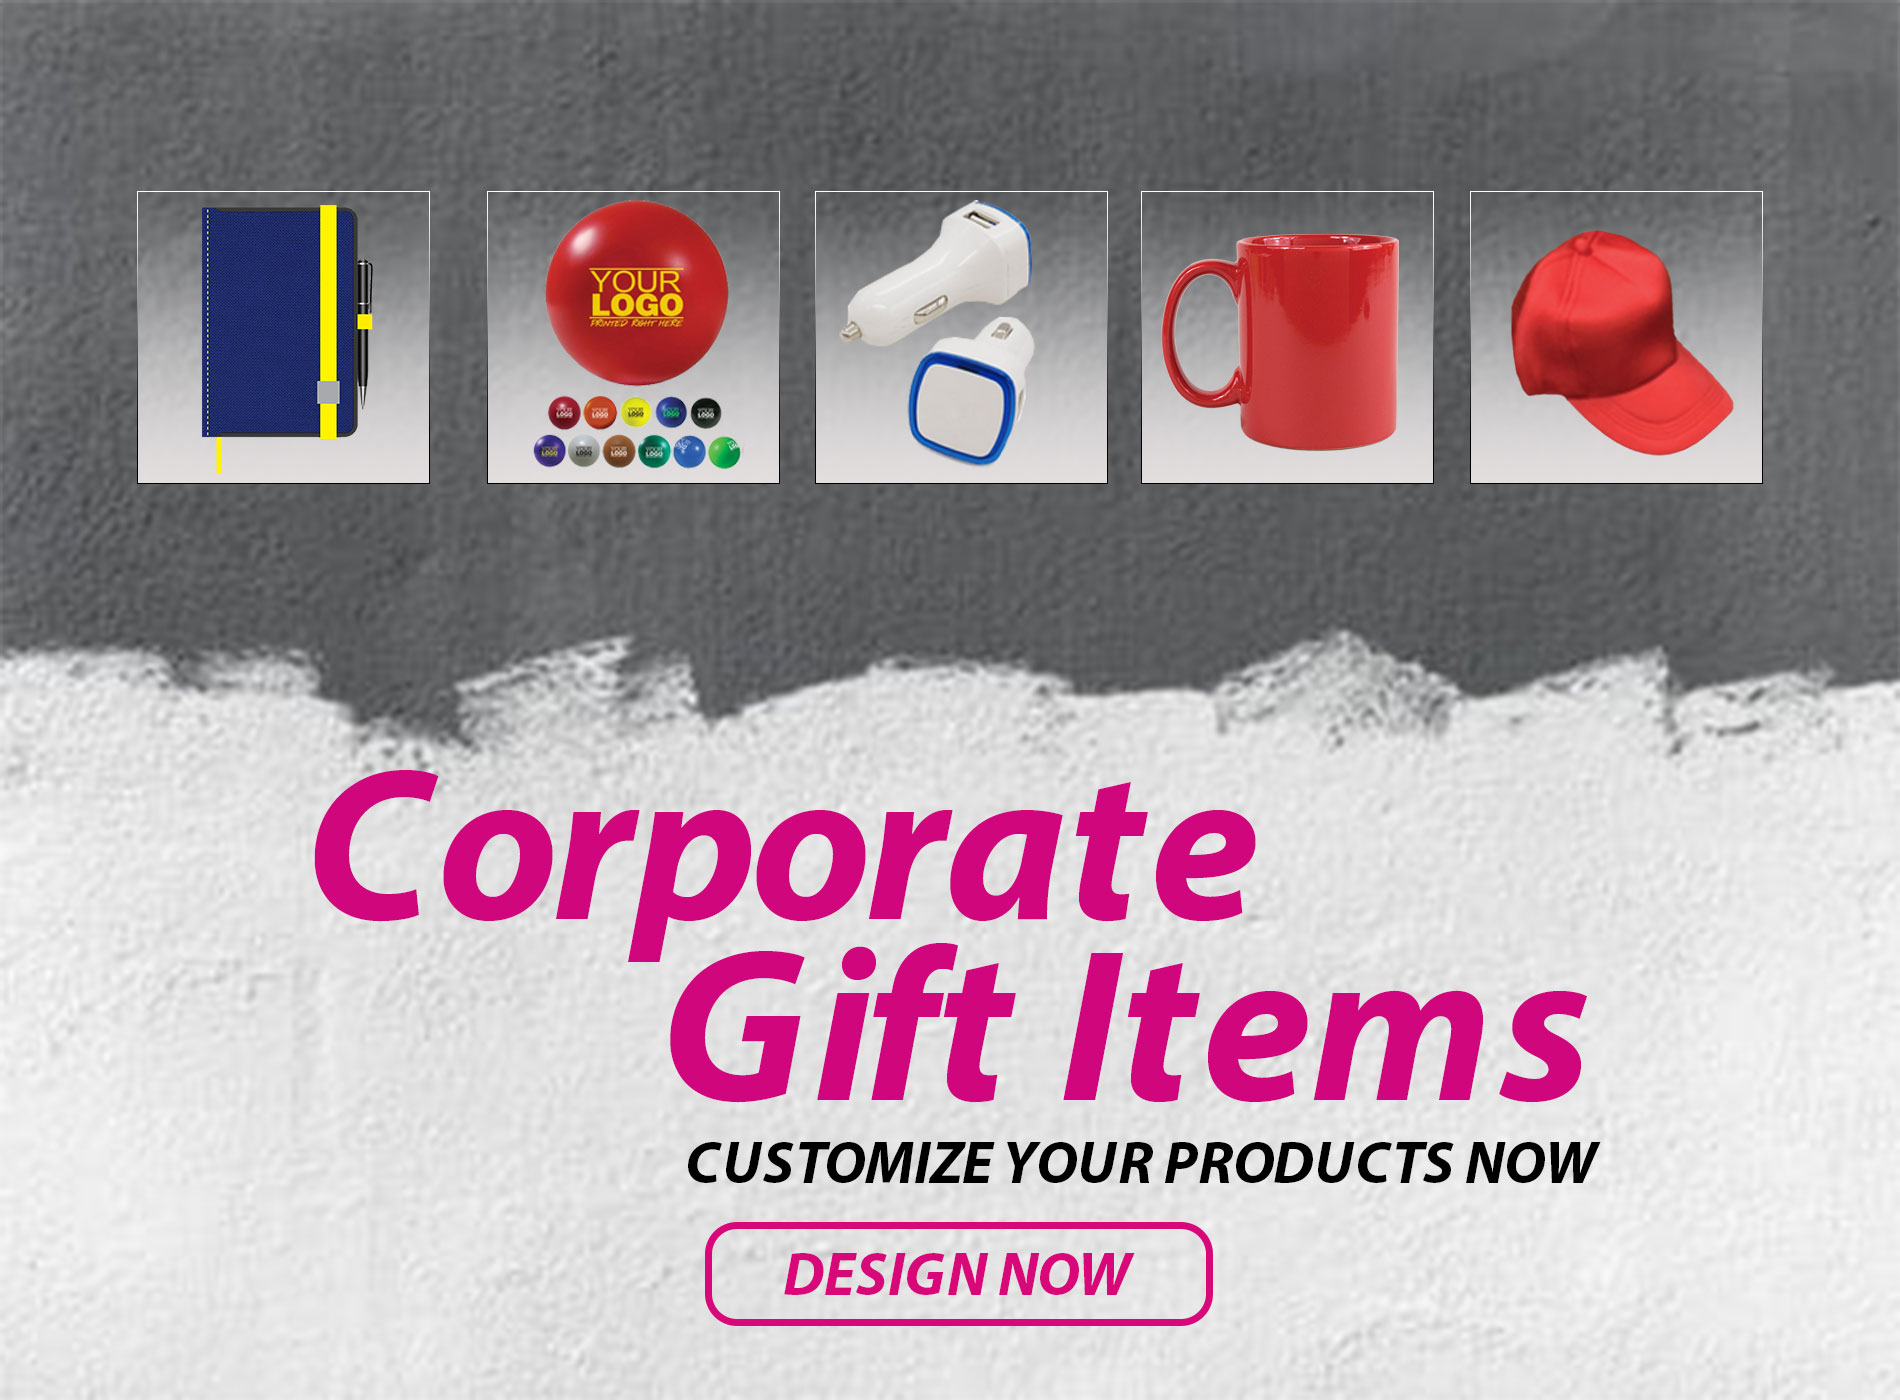 Coorporate Gift Items